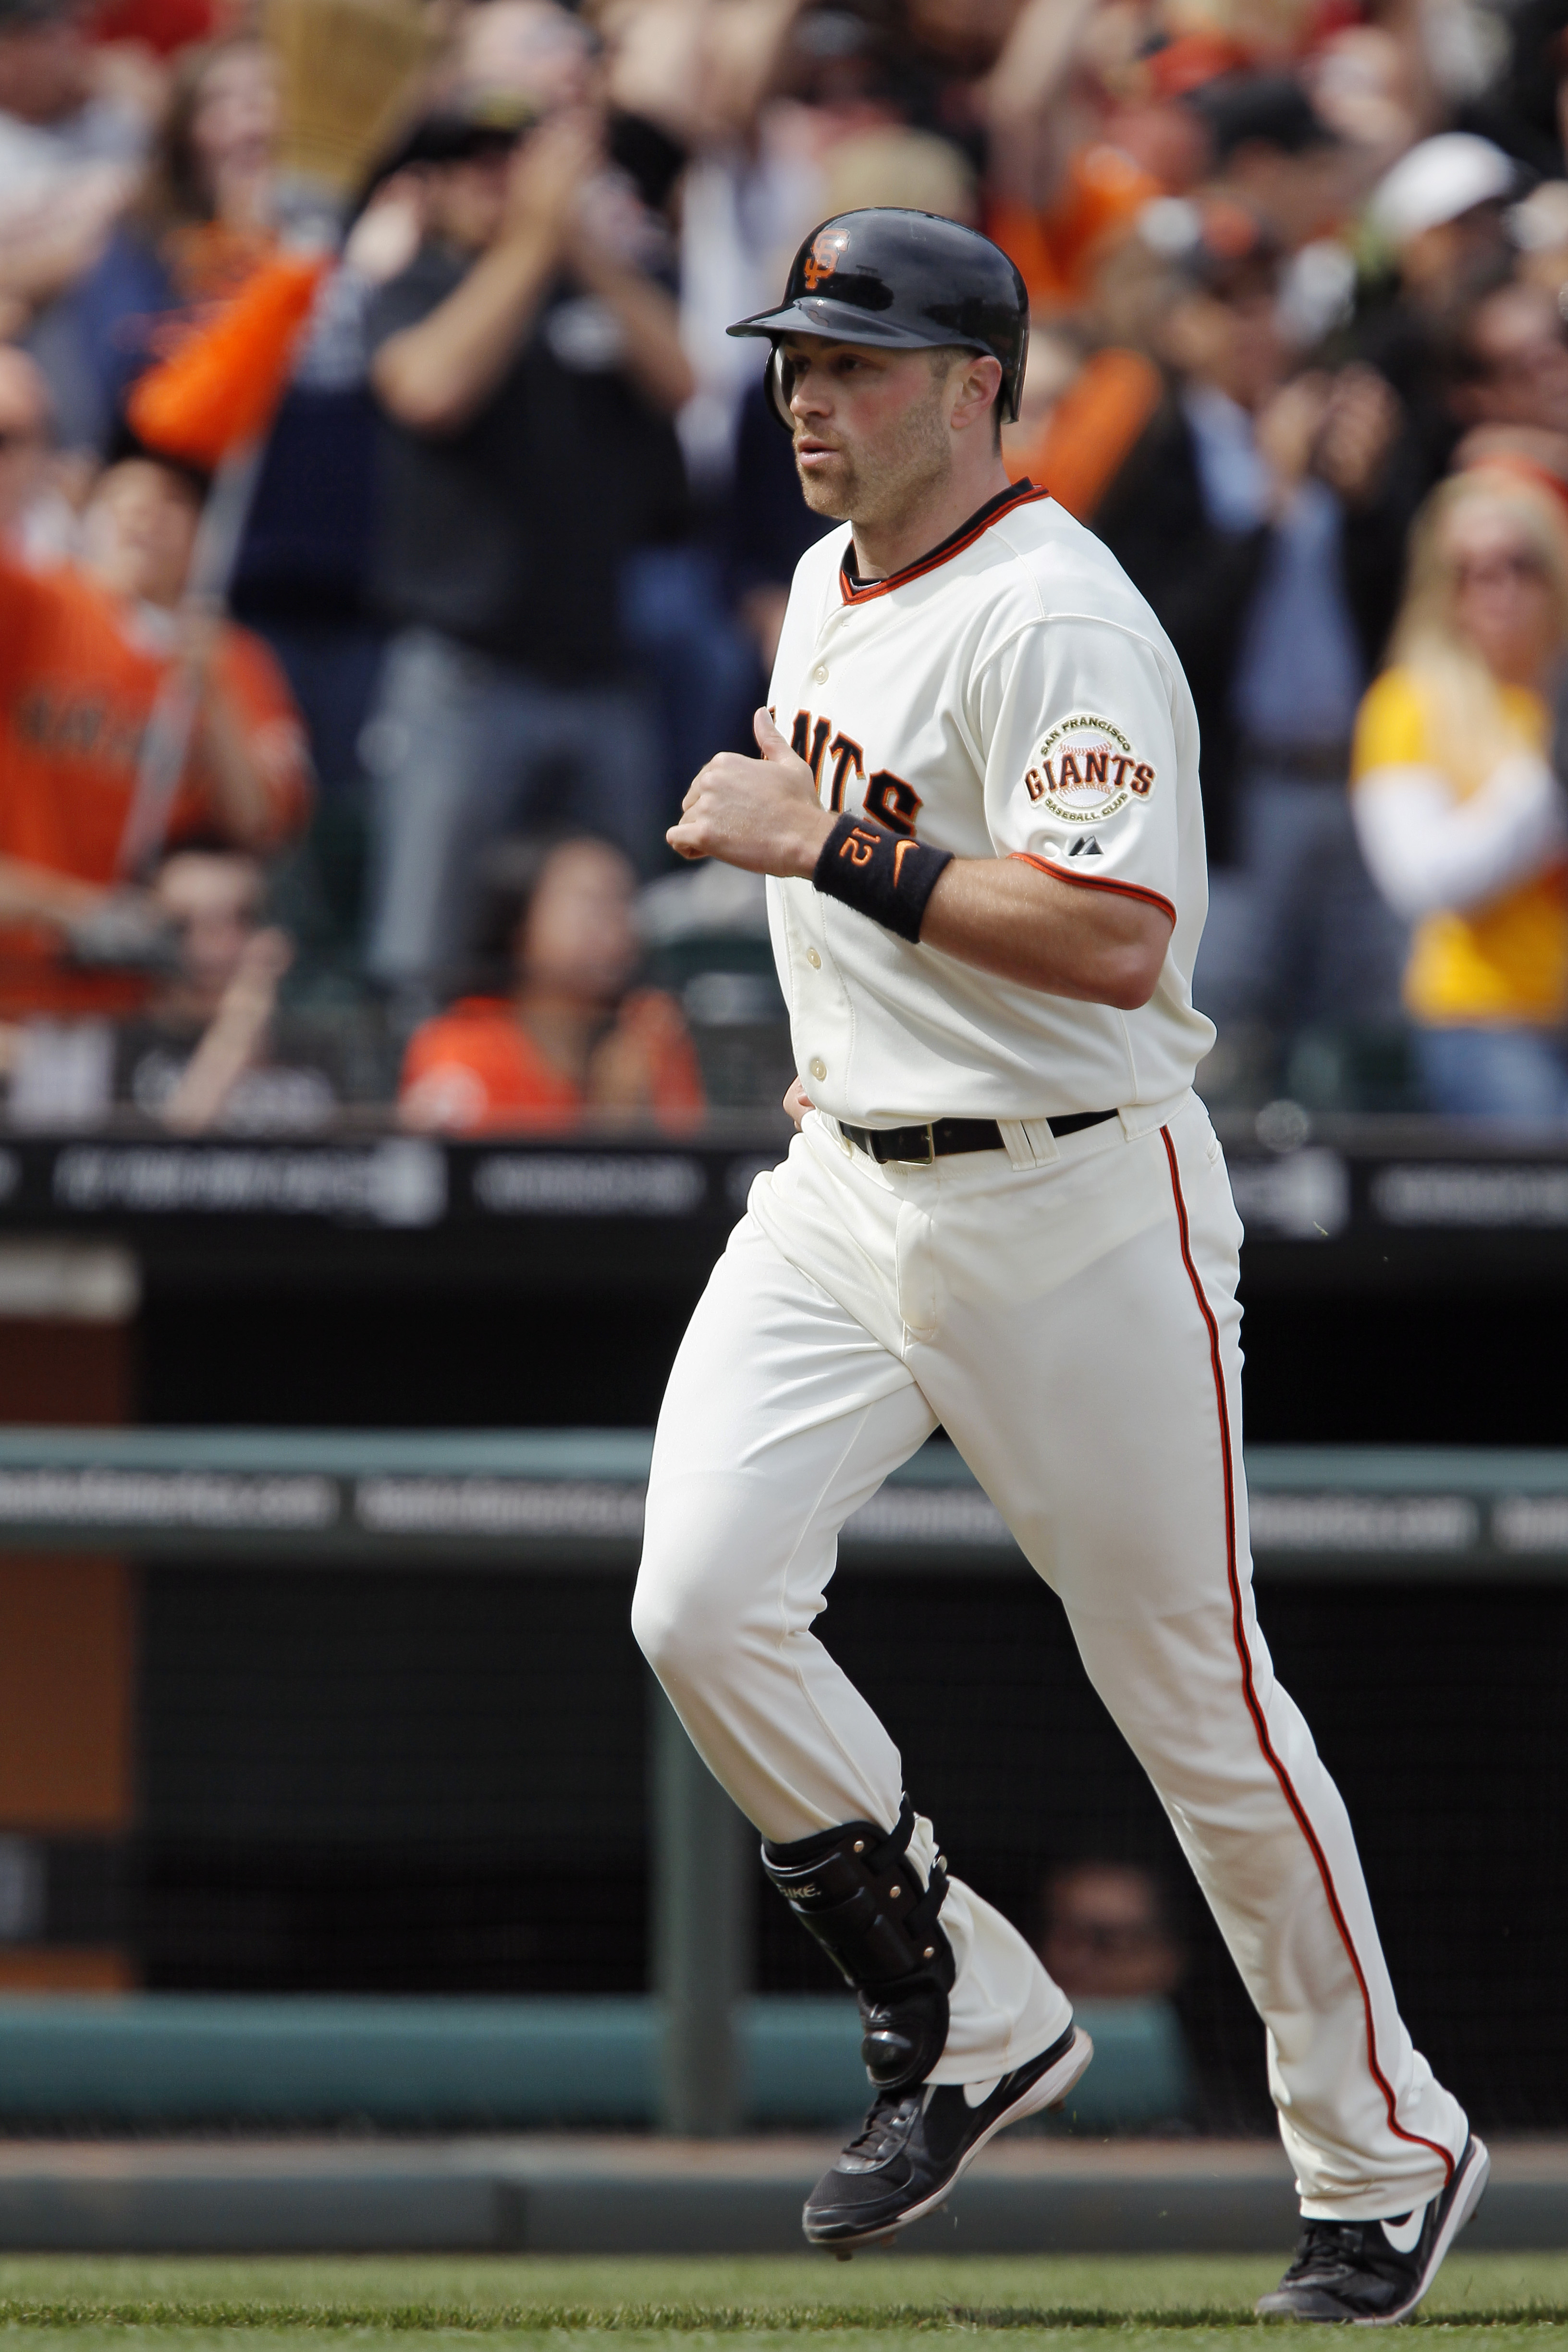 SAN FRANCISCO, CA - MAY 22:  Nate Schierholtz #12 of the San Francisco Giants rounds the bases on a two-run home run to tie the game against the Oakland A's in the eighth inning at AT&T Park on May 22, 2011 in San Francisco, California.  The Giants won 5-